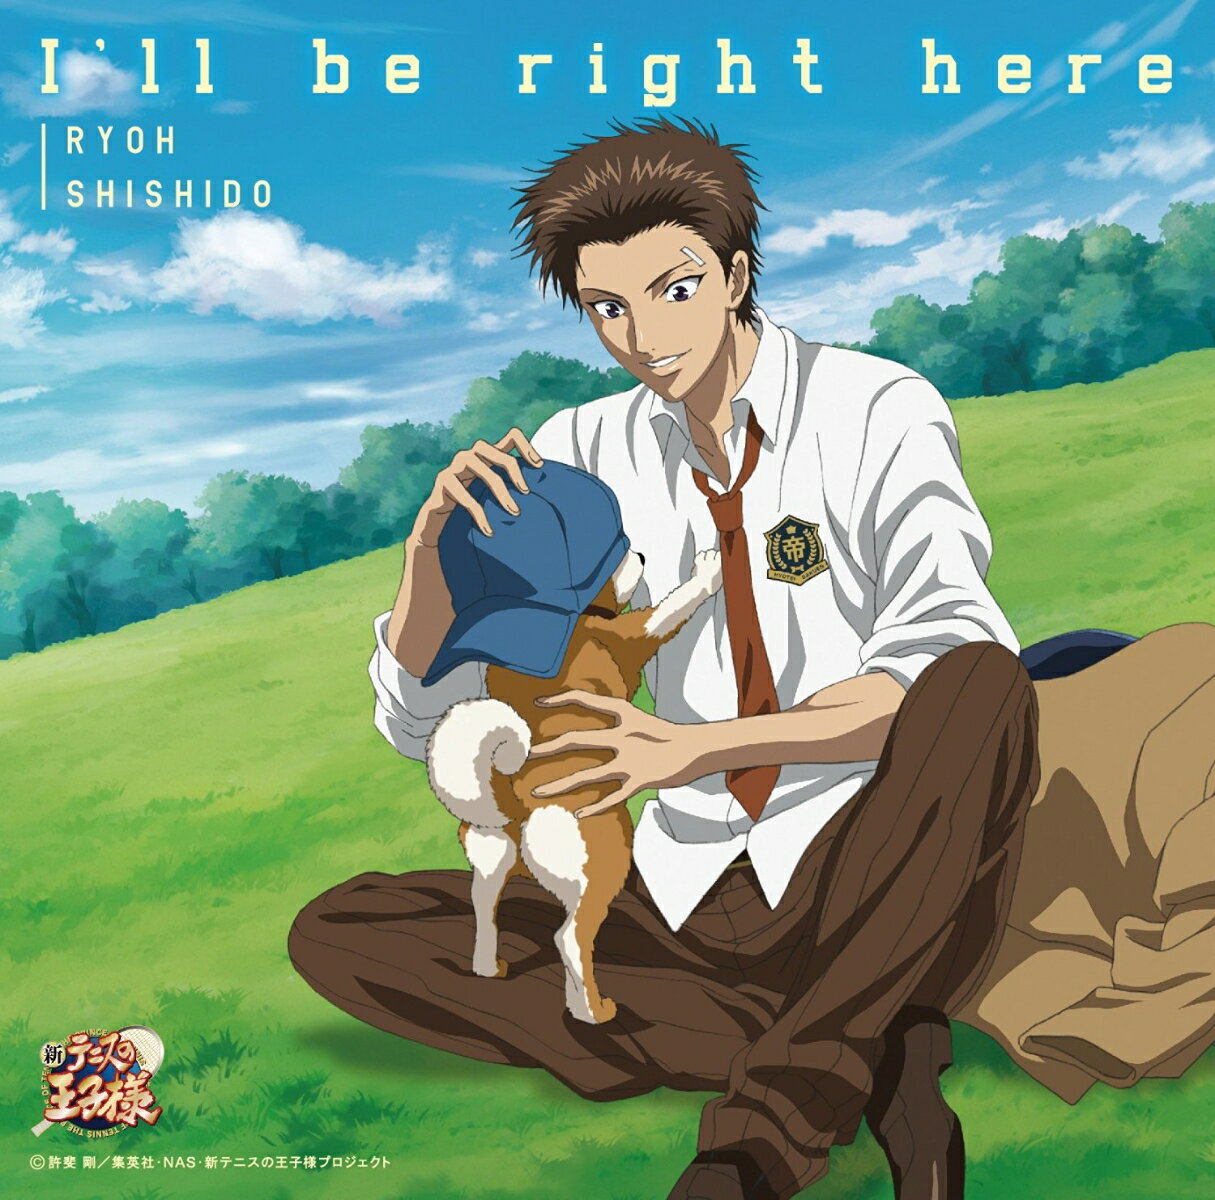 CD, アニメ Ill be right here